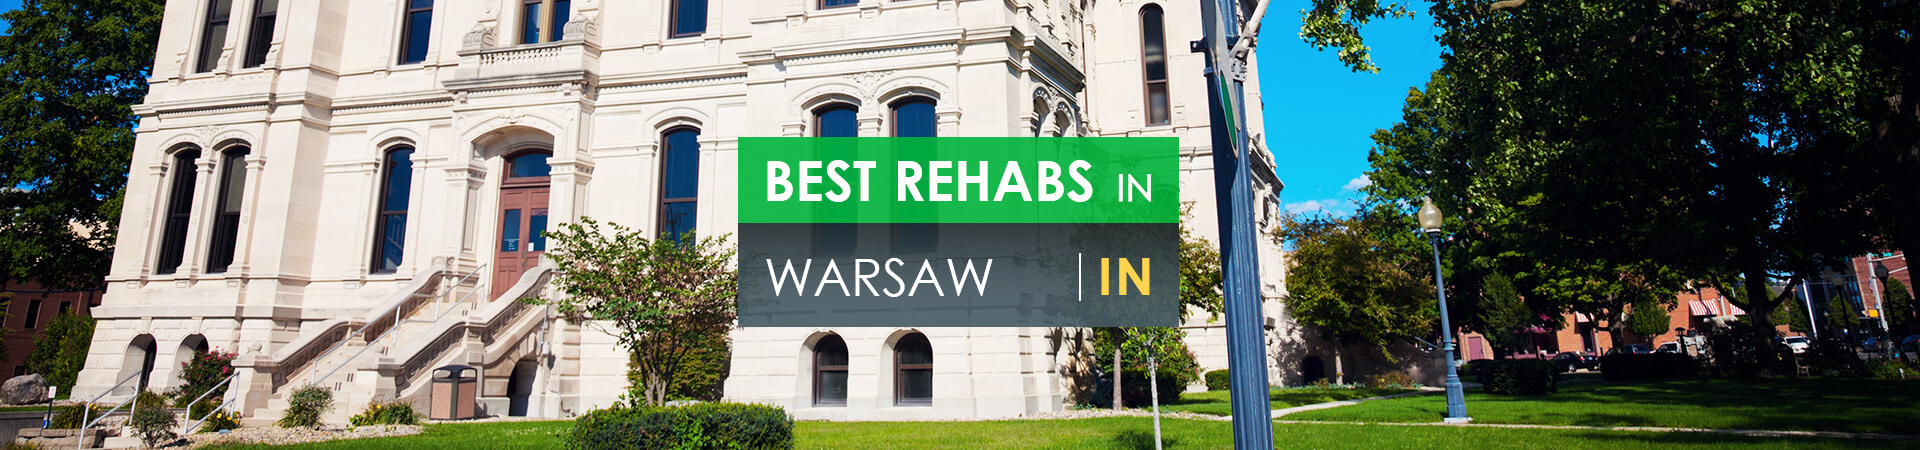 Best rehabs in Warsaw, IN